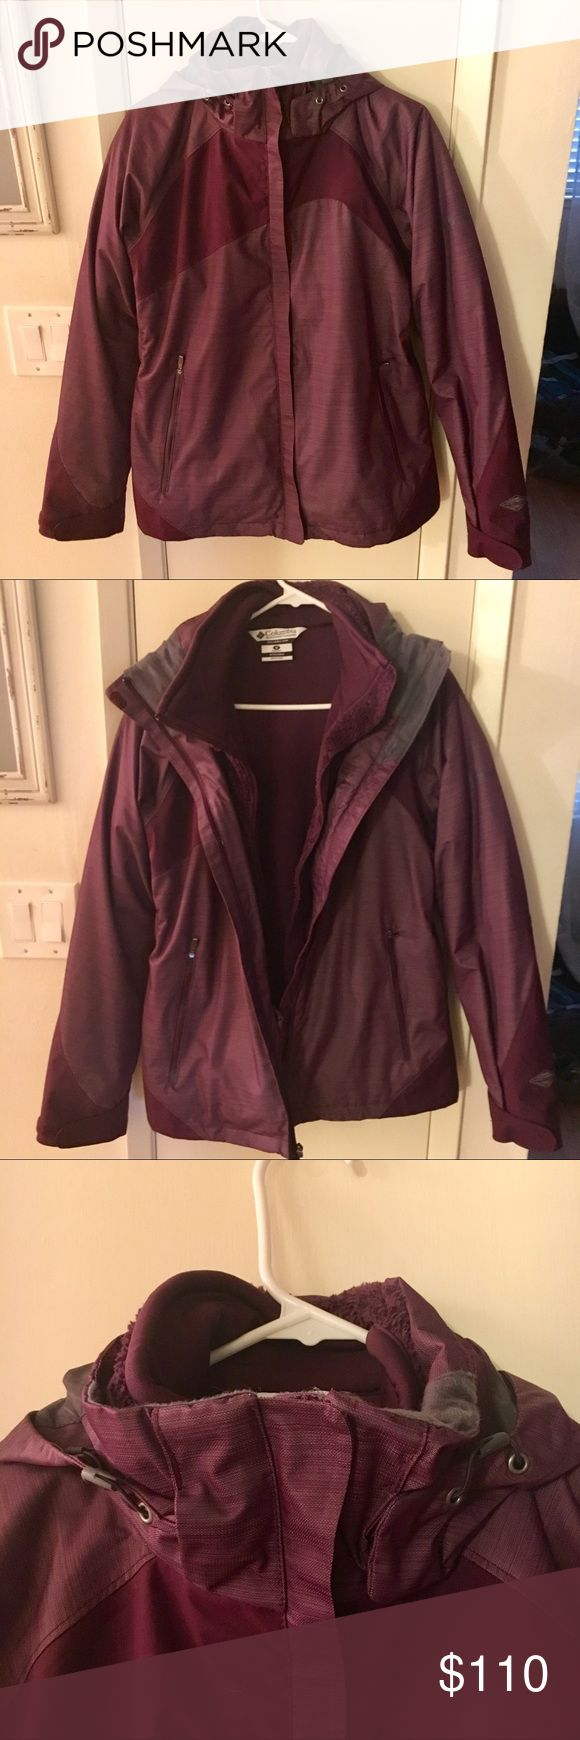 2 in 1 Columbia snow jacket/fleece! Purple 2 in 1 Columbia cold weather jacket! Comes with two jackets! A hard shell windbreaker waterproof lightweight jacket with an inner (&detachable) fleece jacket! The hood can also be zipped off & on! Only worn once or twice! In Great condition!!  I'd be willing to sell just one for a cheaper price if you're only interested in the fleece or the windbreaker outside jacket! Columbia Jackets & Coats Utility Jackets